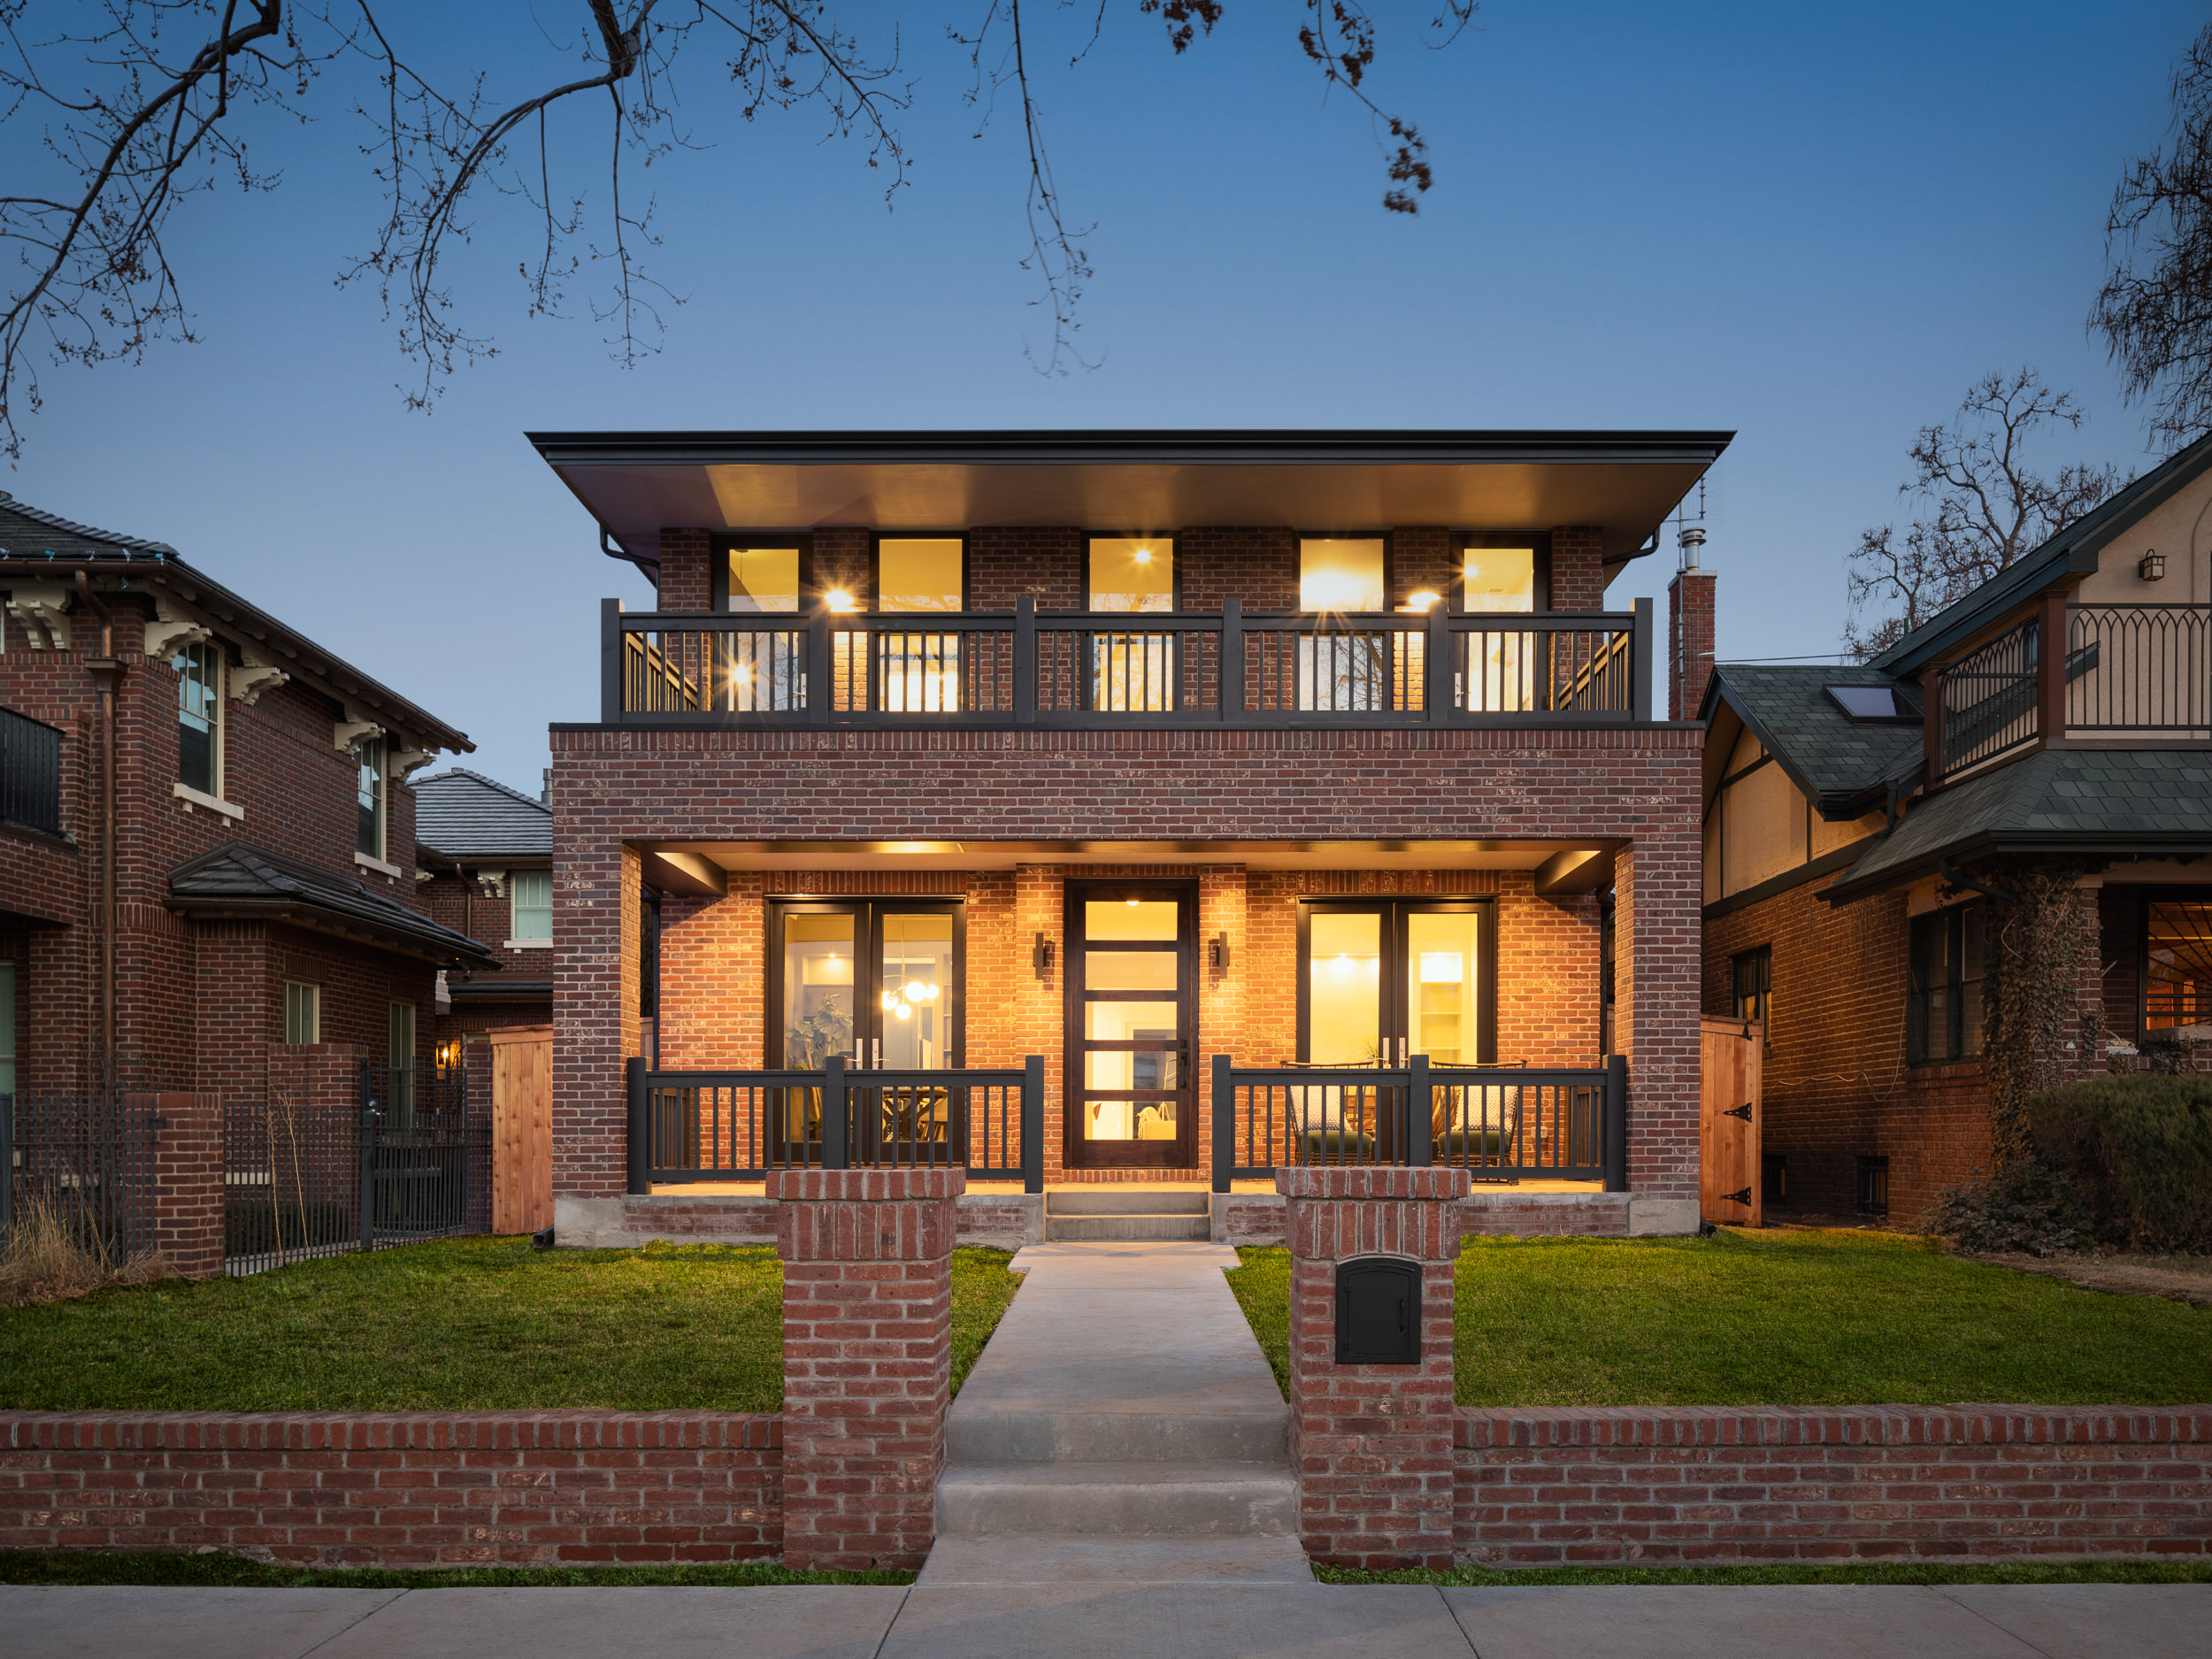 Modern Tradition: A New Build Preserves The Past